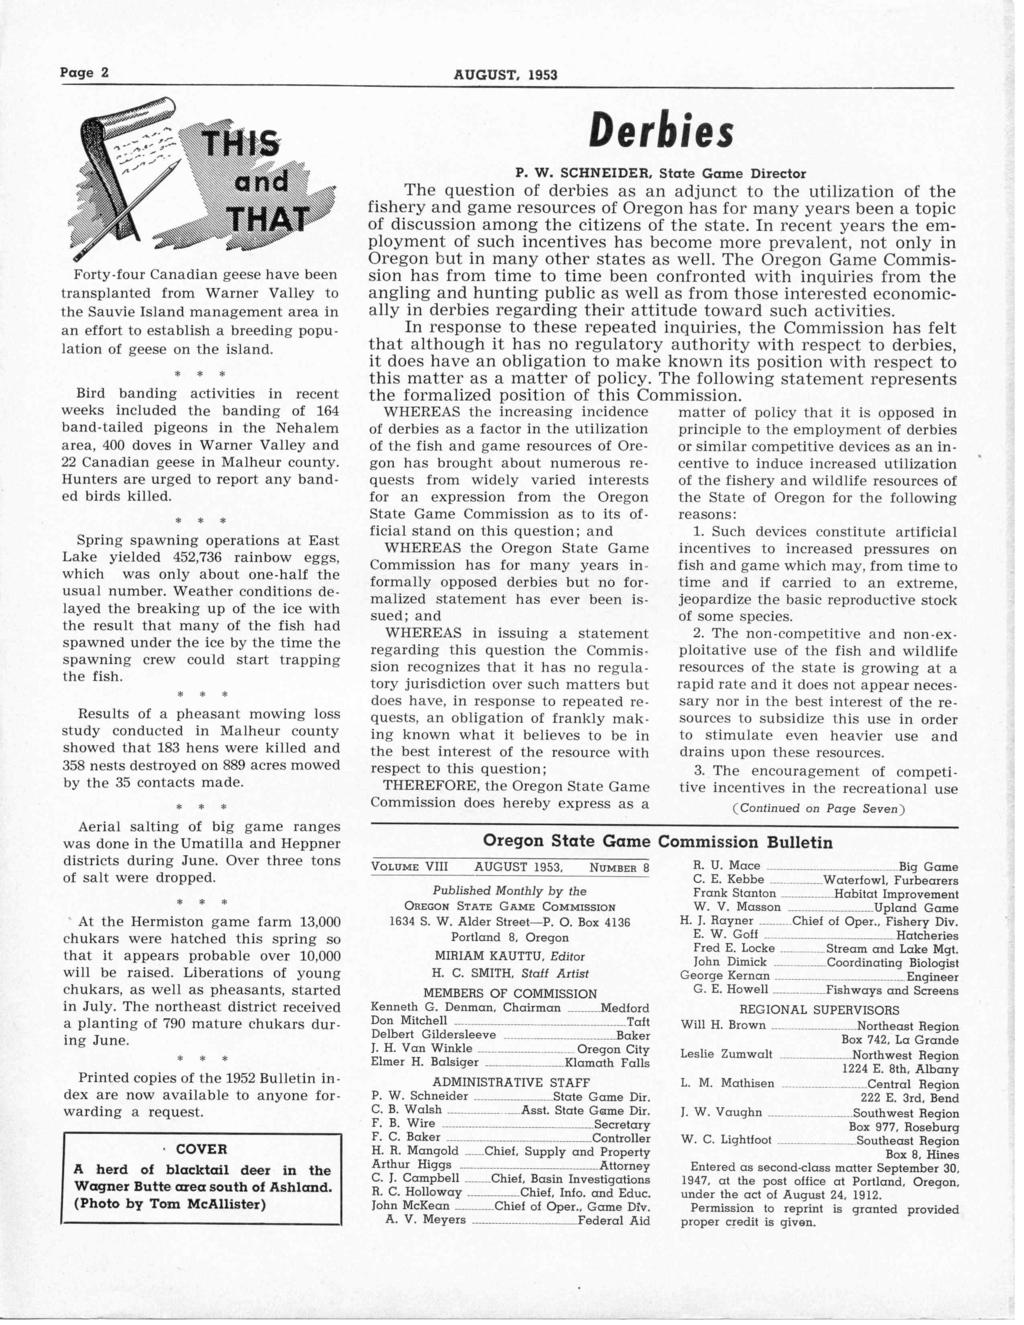 Page 2 AUGUST, 1953 Forty-four Canadian geese have been transplanted from Warner Valley to the Sauvie Island management area in an effort to establish a breeding population of geese on the island.